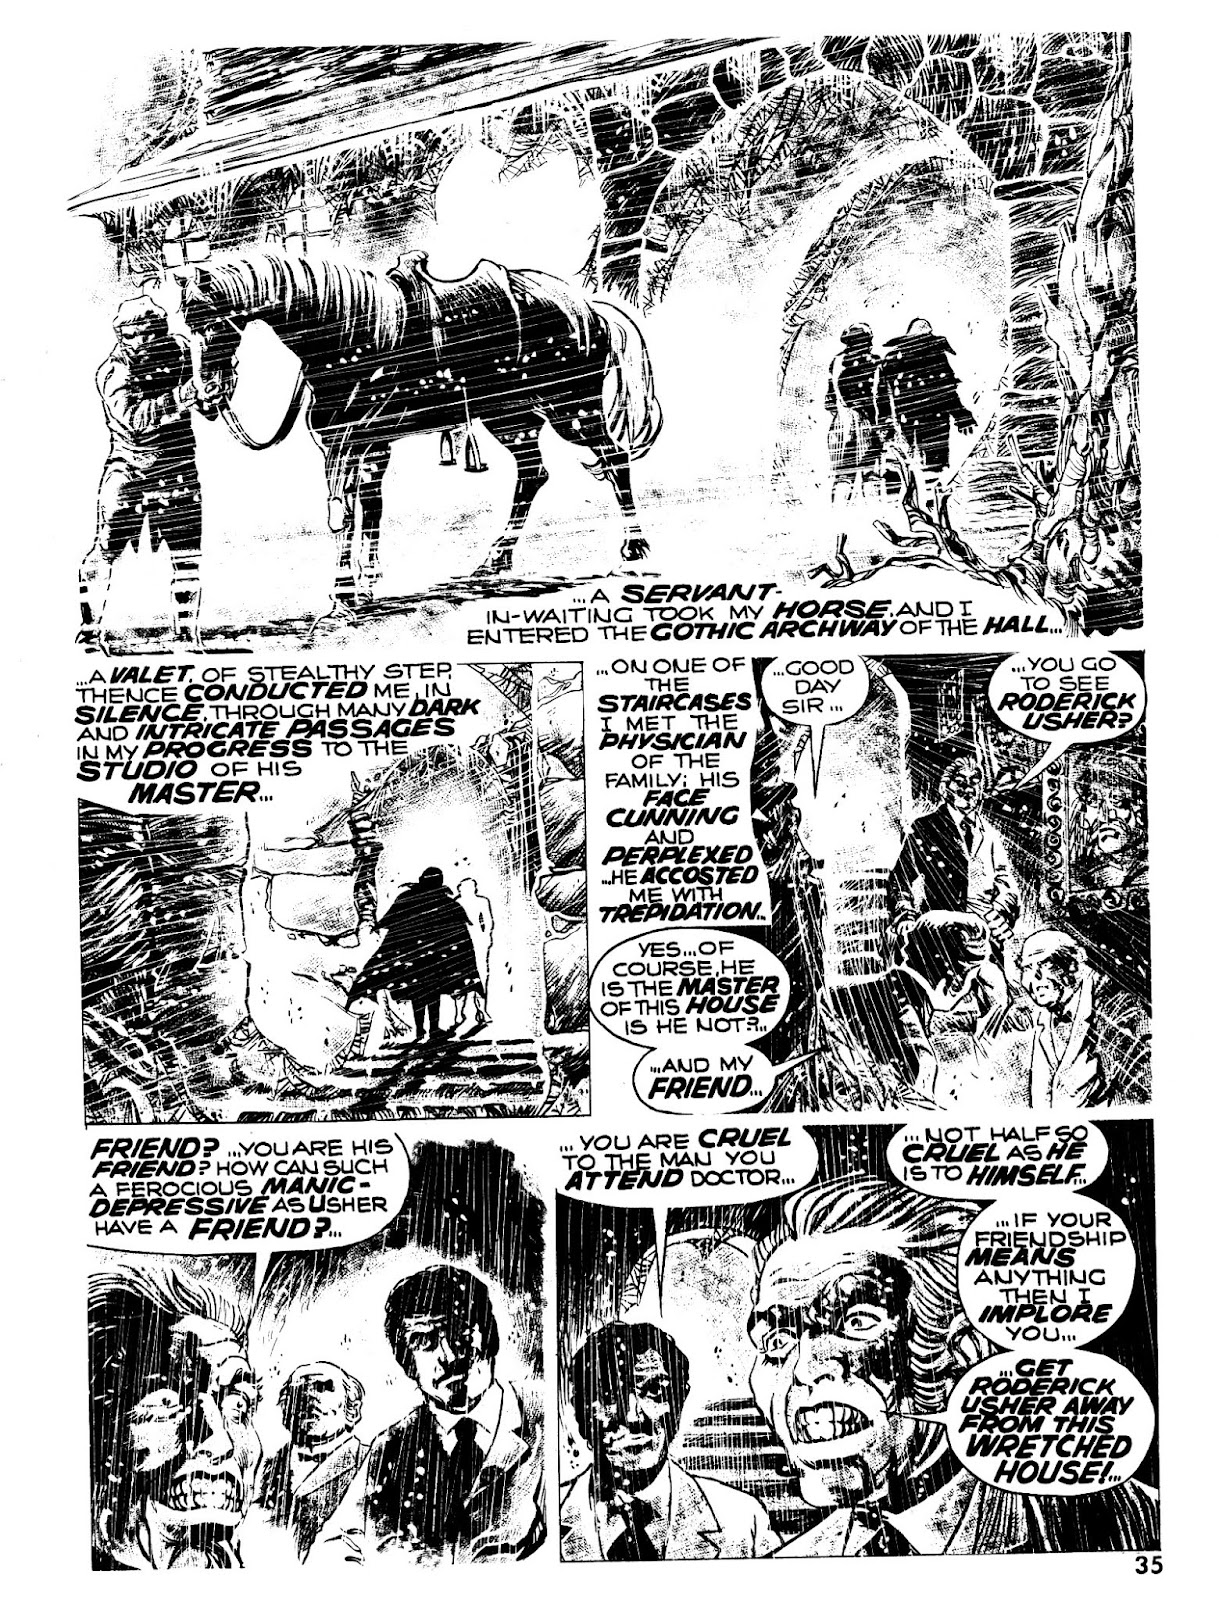 Scream (1973) issue 3 - Page 35